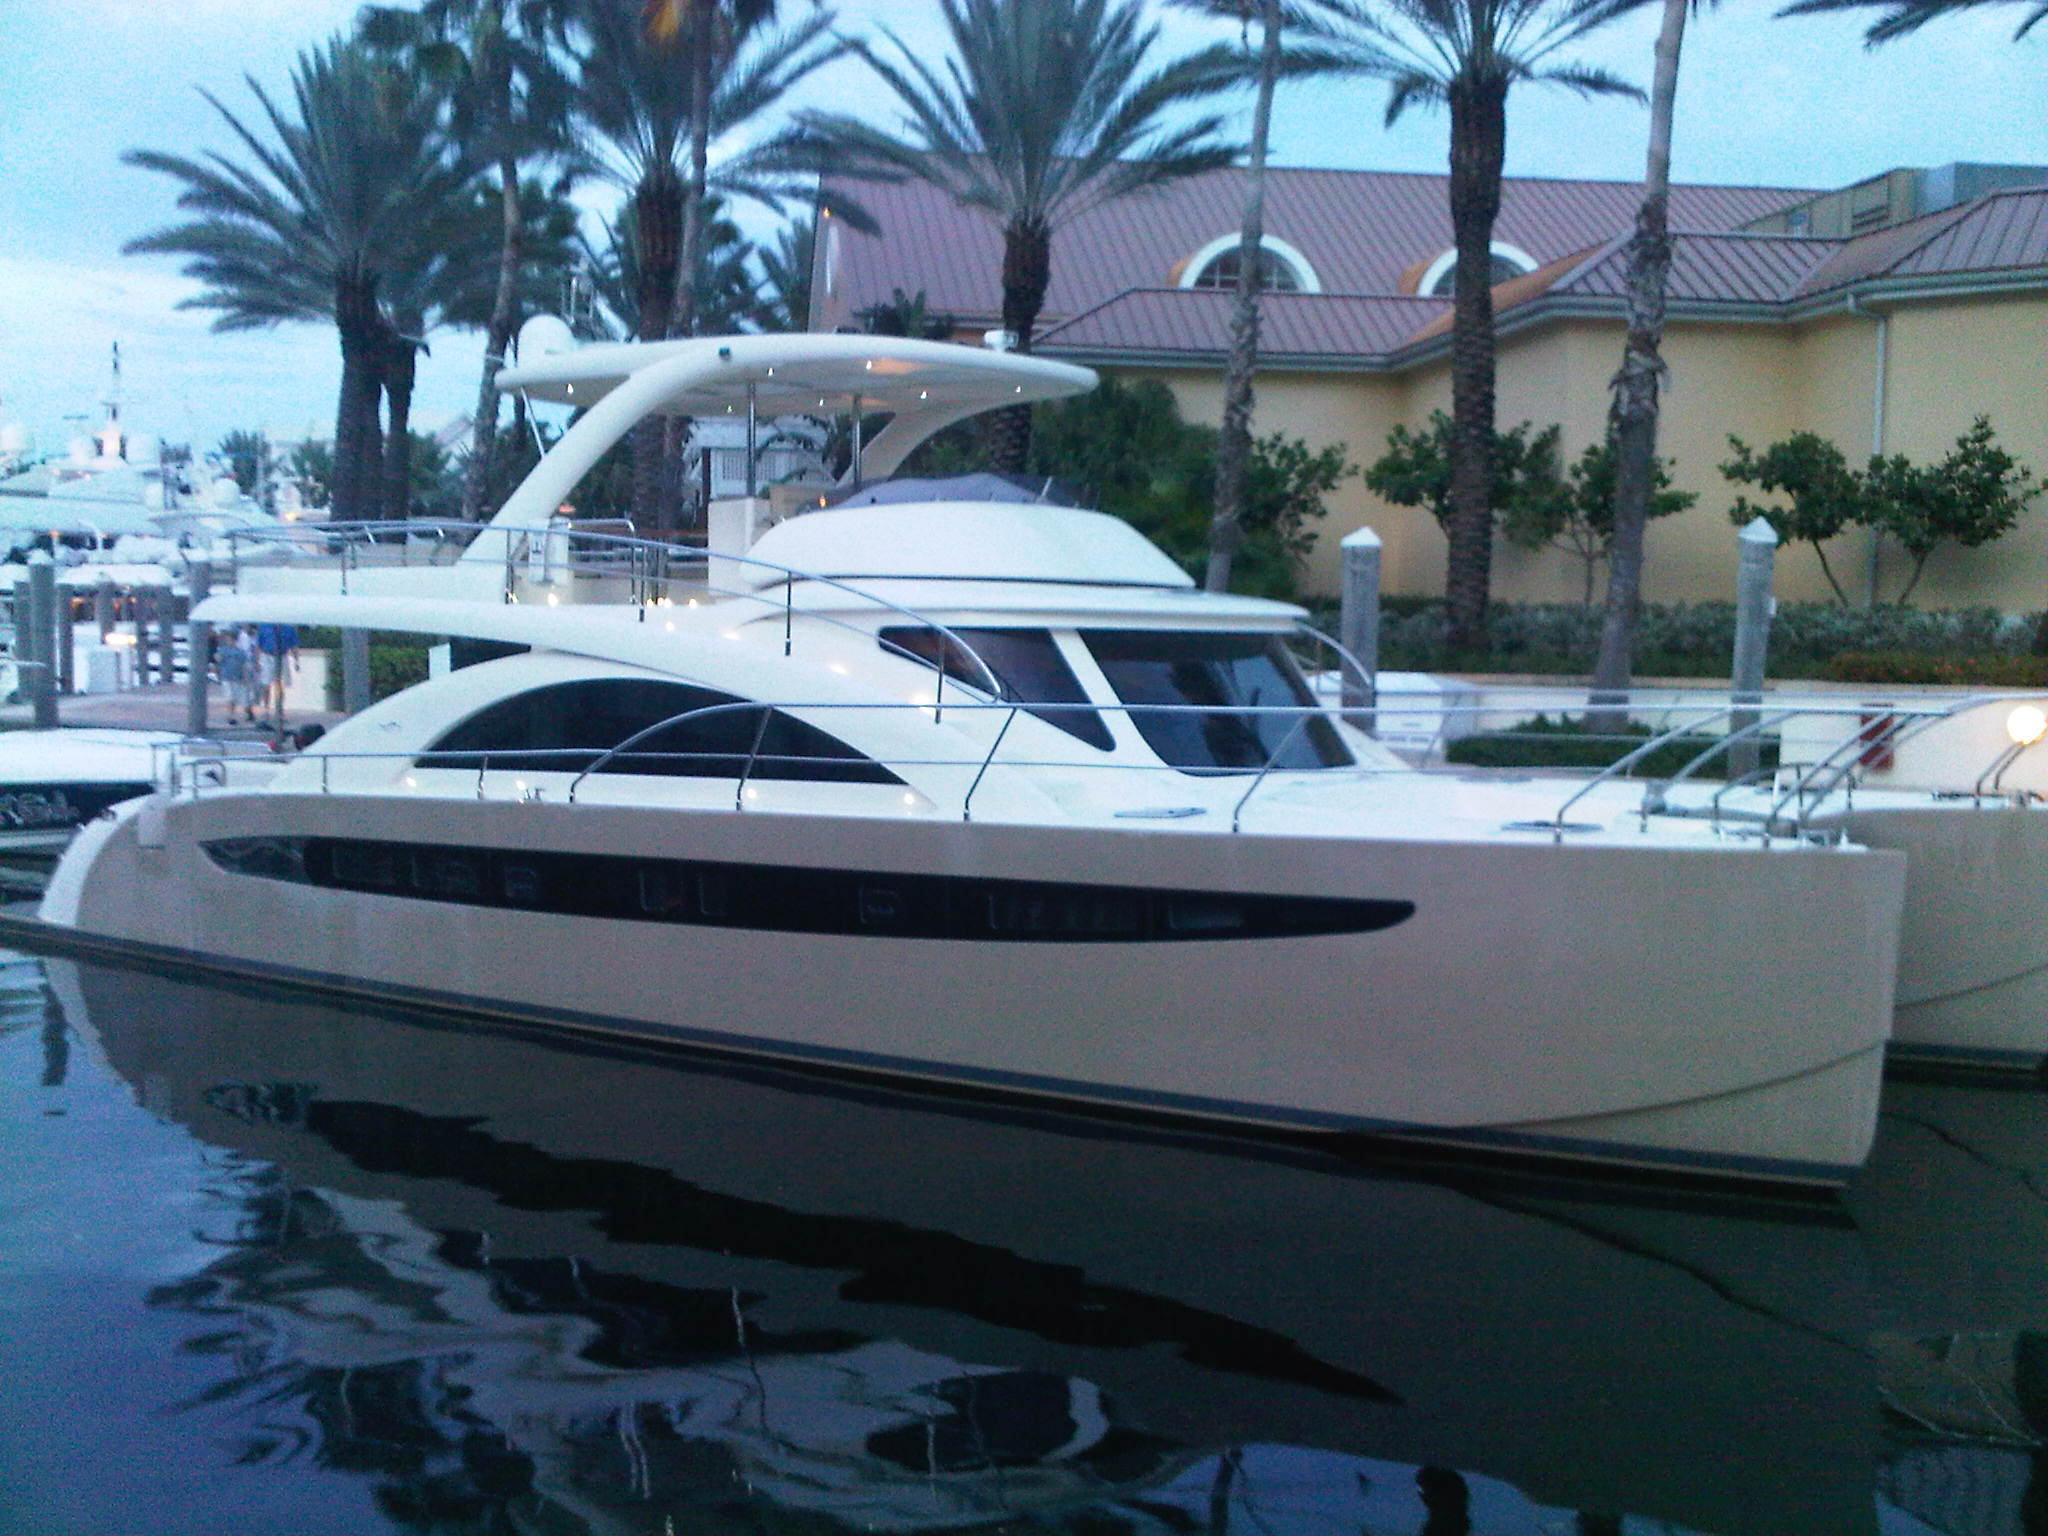 62ft Power Cat Yacht